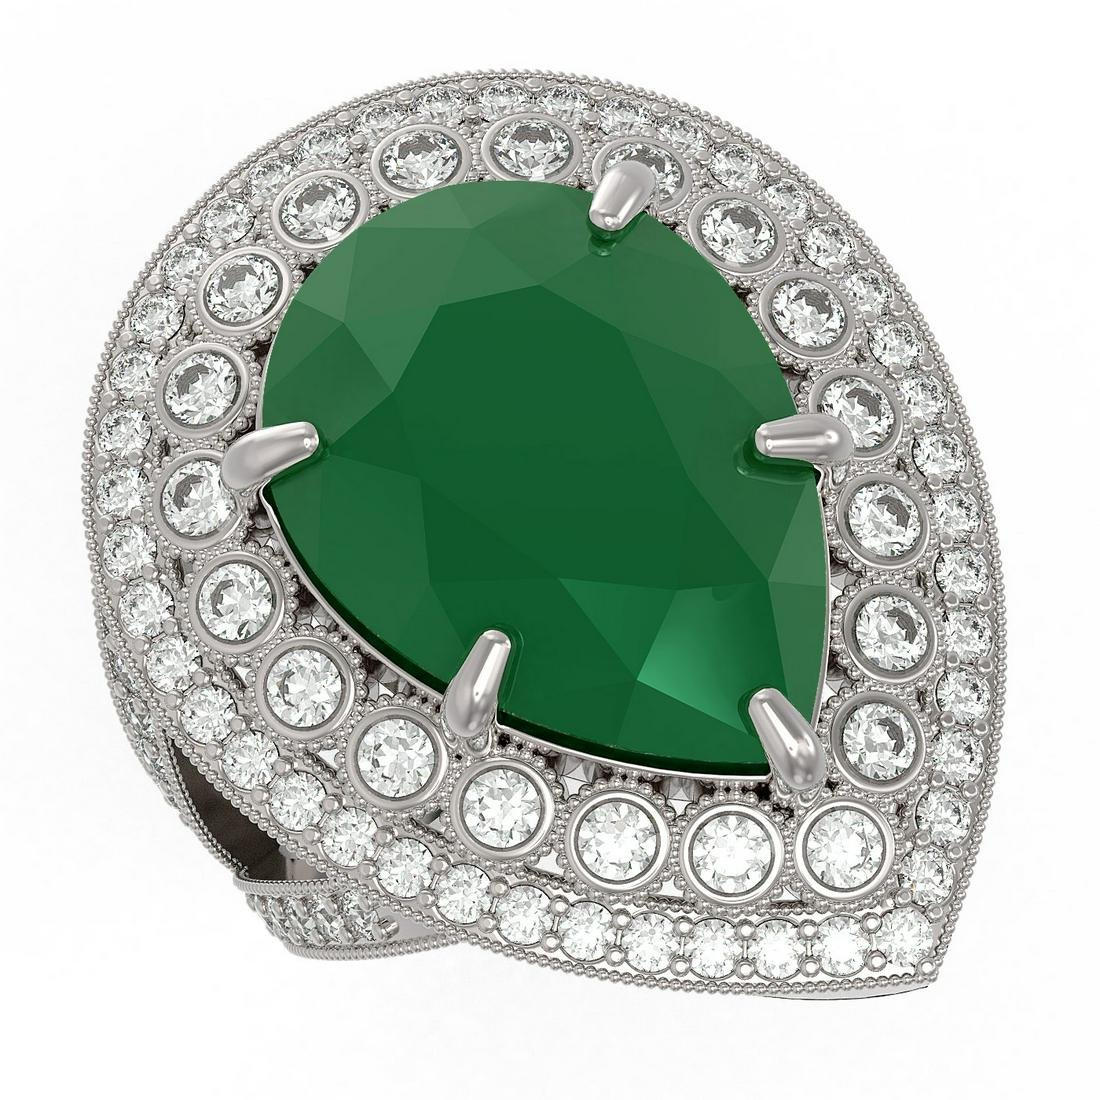 16.29 ctw Certified Emerald & Diamond Victorian Ring